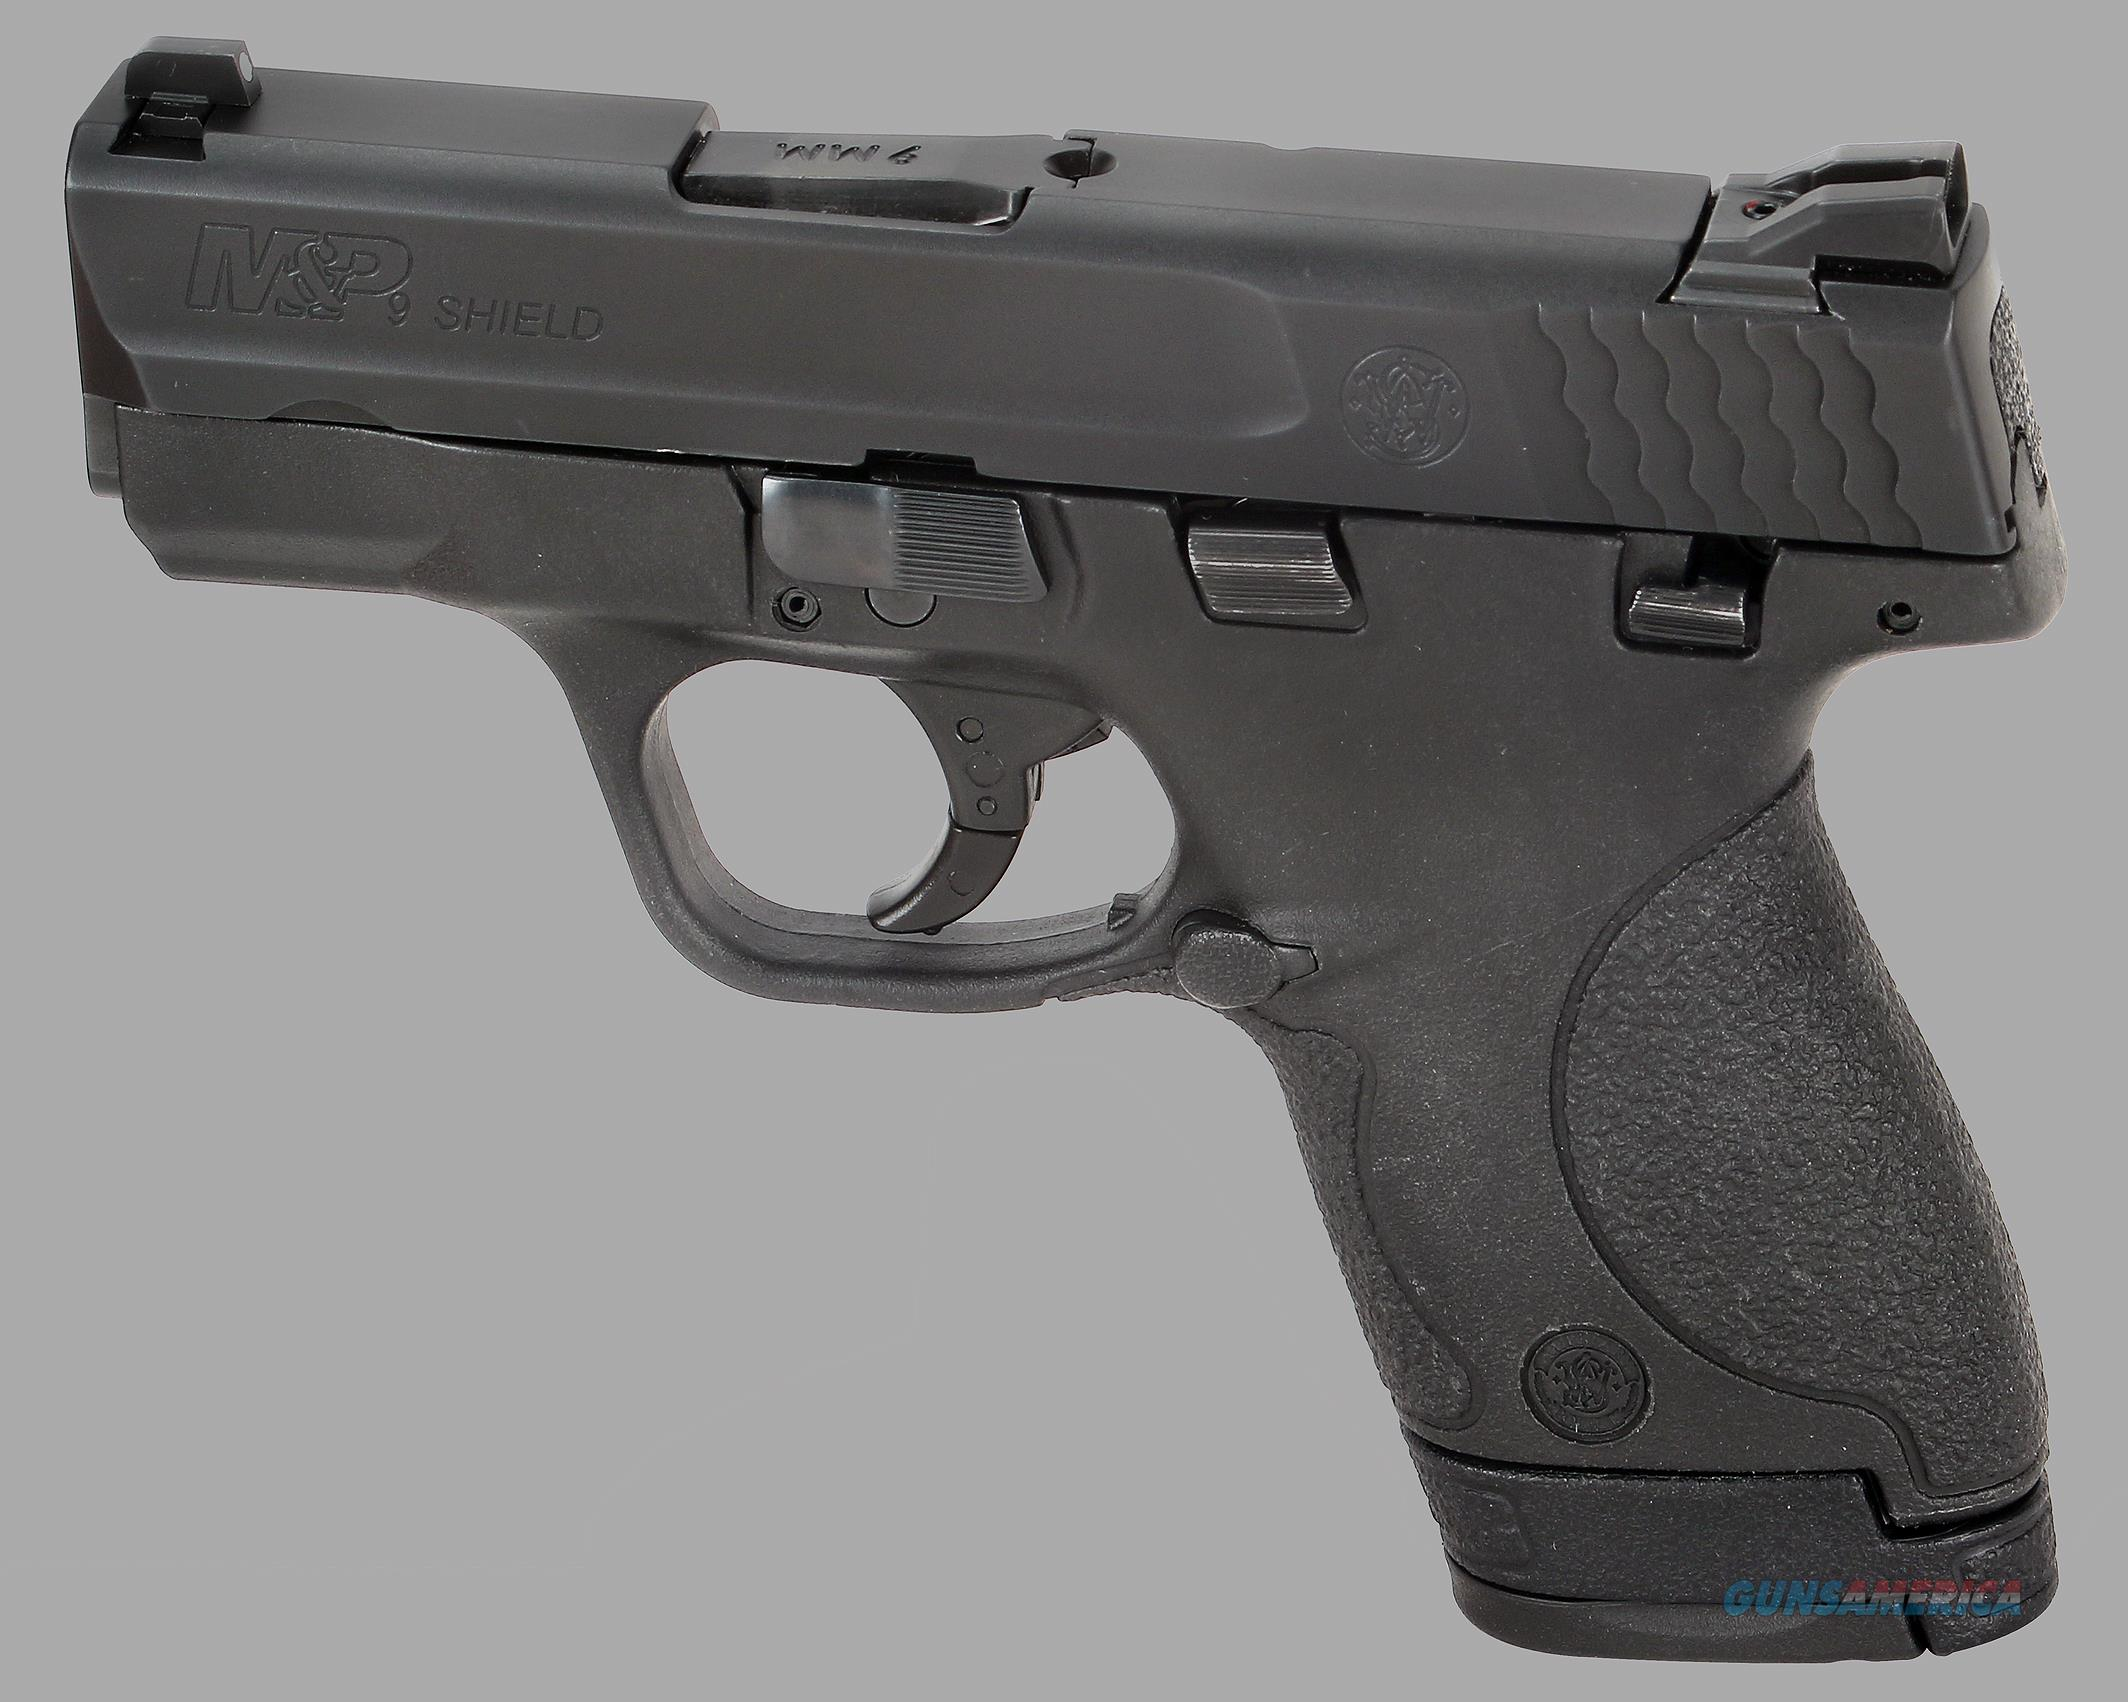 Smith & Wesson 9mm M&P9 Pistol  Guns > Pistols > Smith & Wesson Pistols - Autos > Polymer Frame